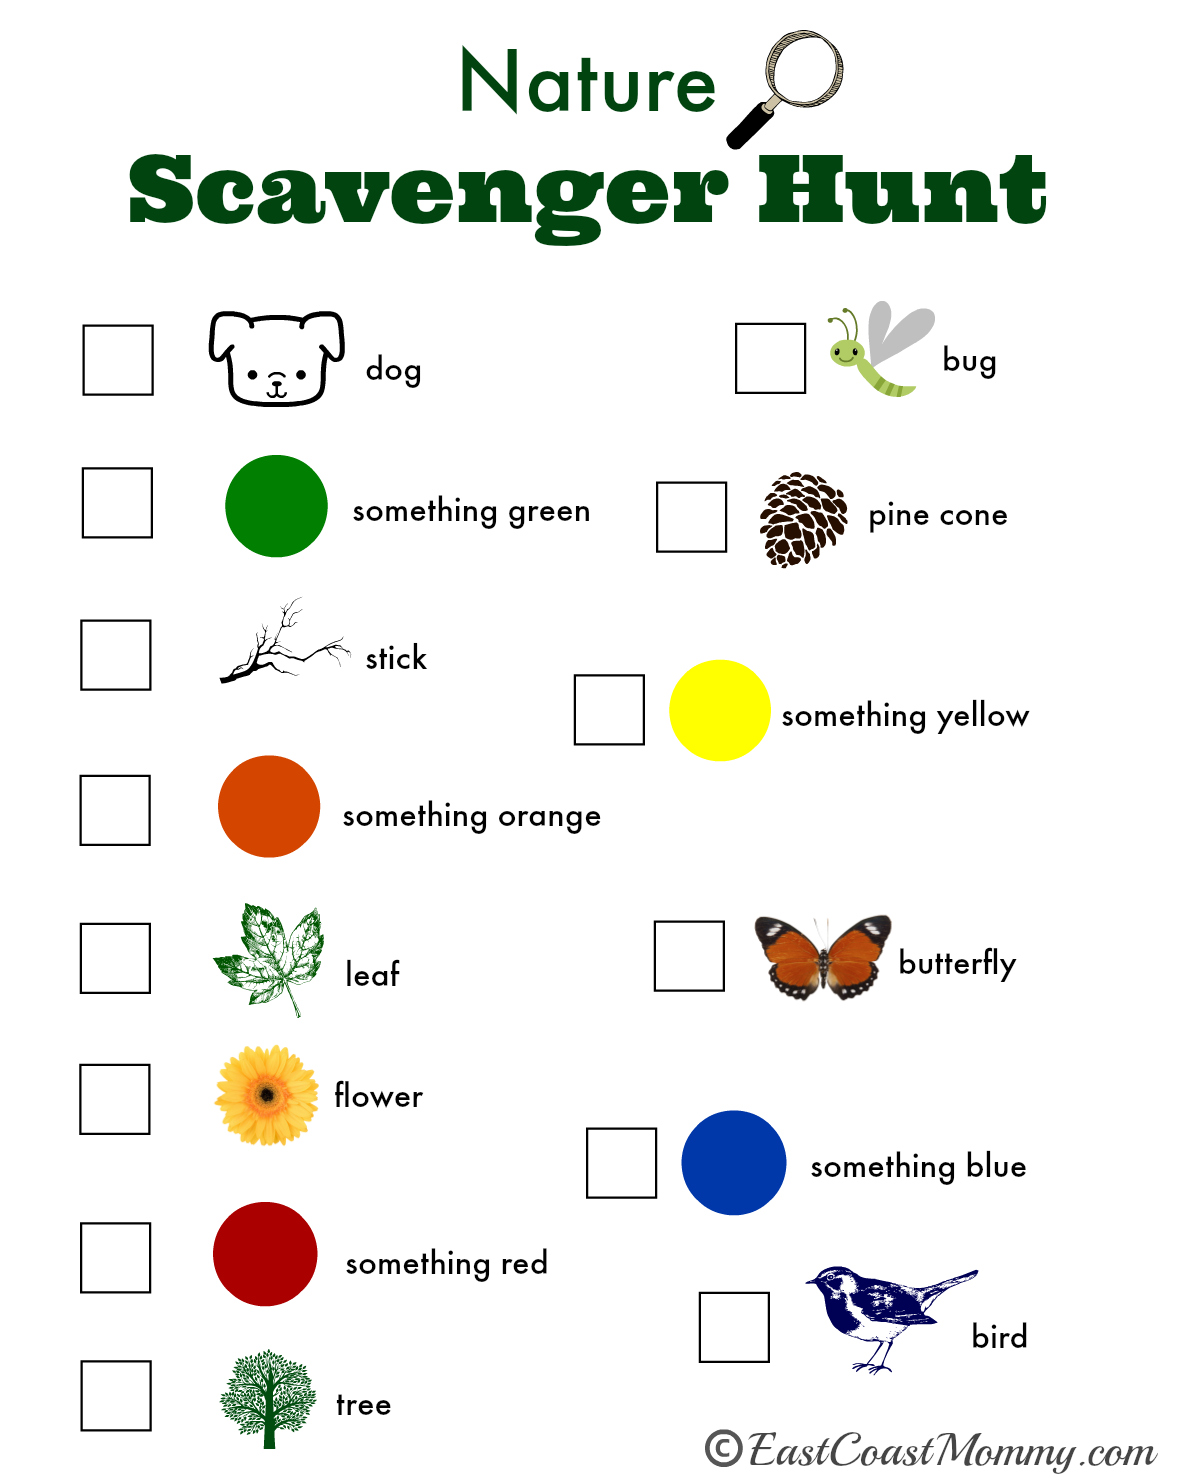 Dramatic image with printable scavenger hunt for kids